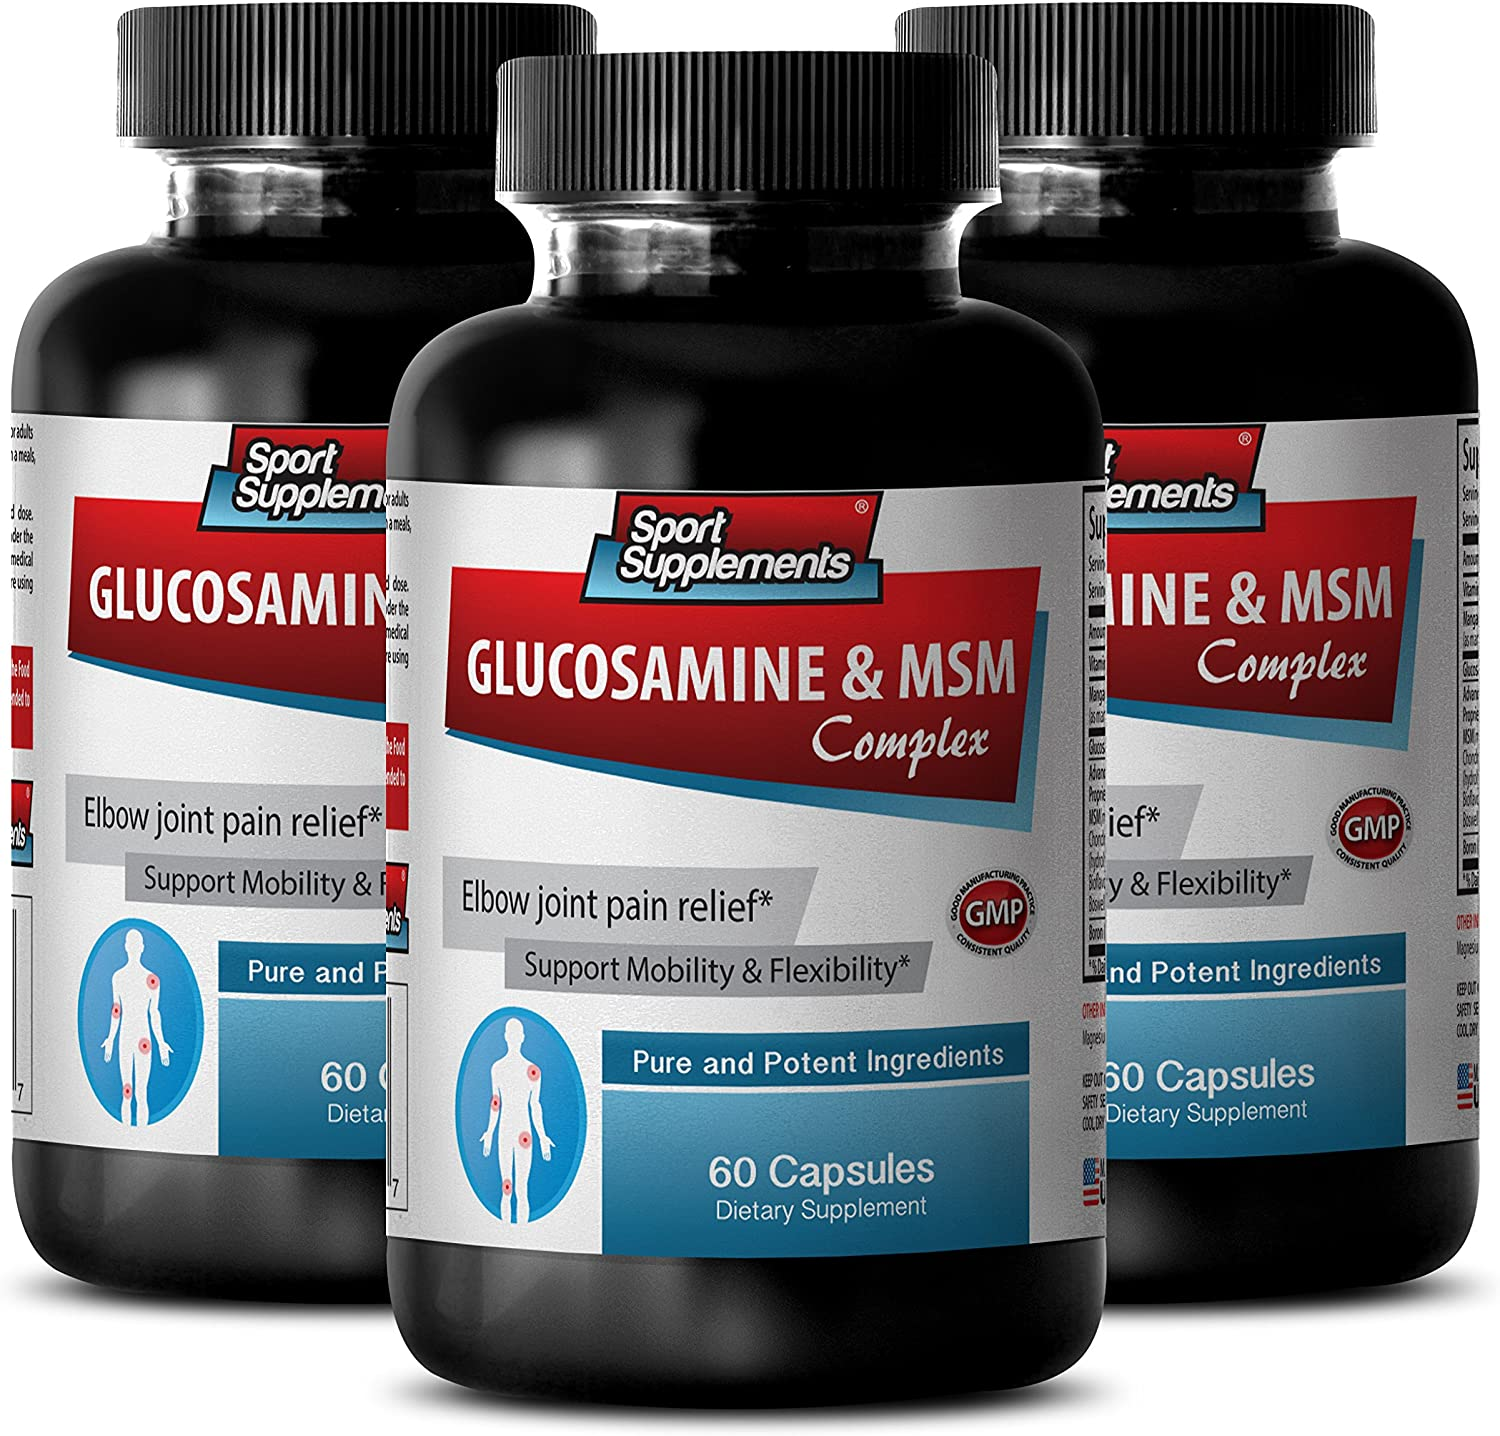 Metabolism Pills - Challenge the lowest price of Japan GLUCOSAMINE MSM 3 Max 54% OFF 3200MG Miracle msm Bo